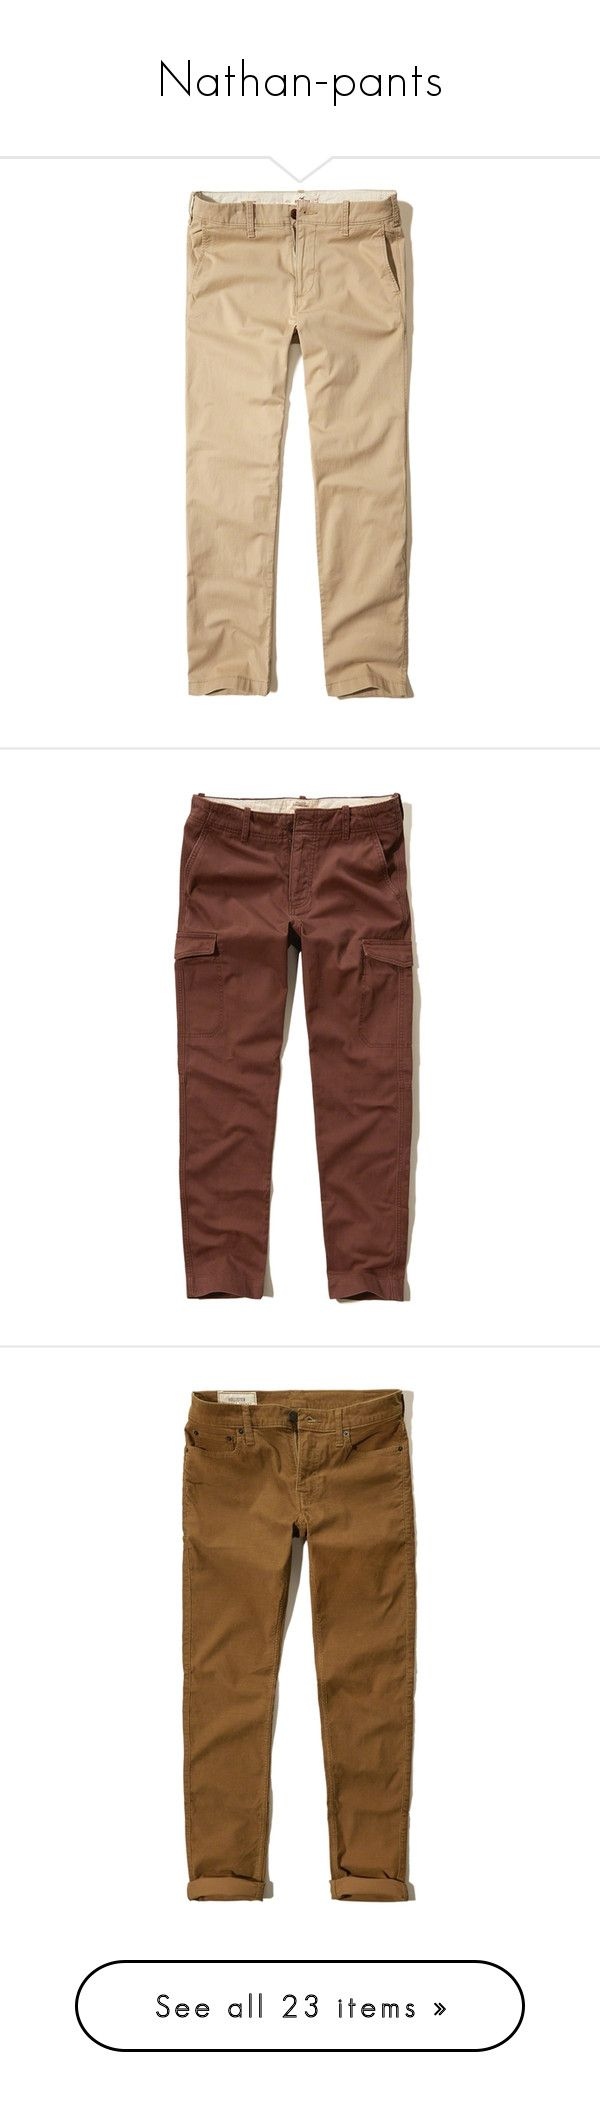 """Nathan-pants"" by those-families ❤ liked on Polyvore featuring mackinnonsiblings, men's fashion, men's clothing, men's pants, men's casual pants, light khaki, mens elastic waistband pants, mens chino pants, mens slim fit chino pants and mens twill pants"